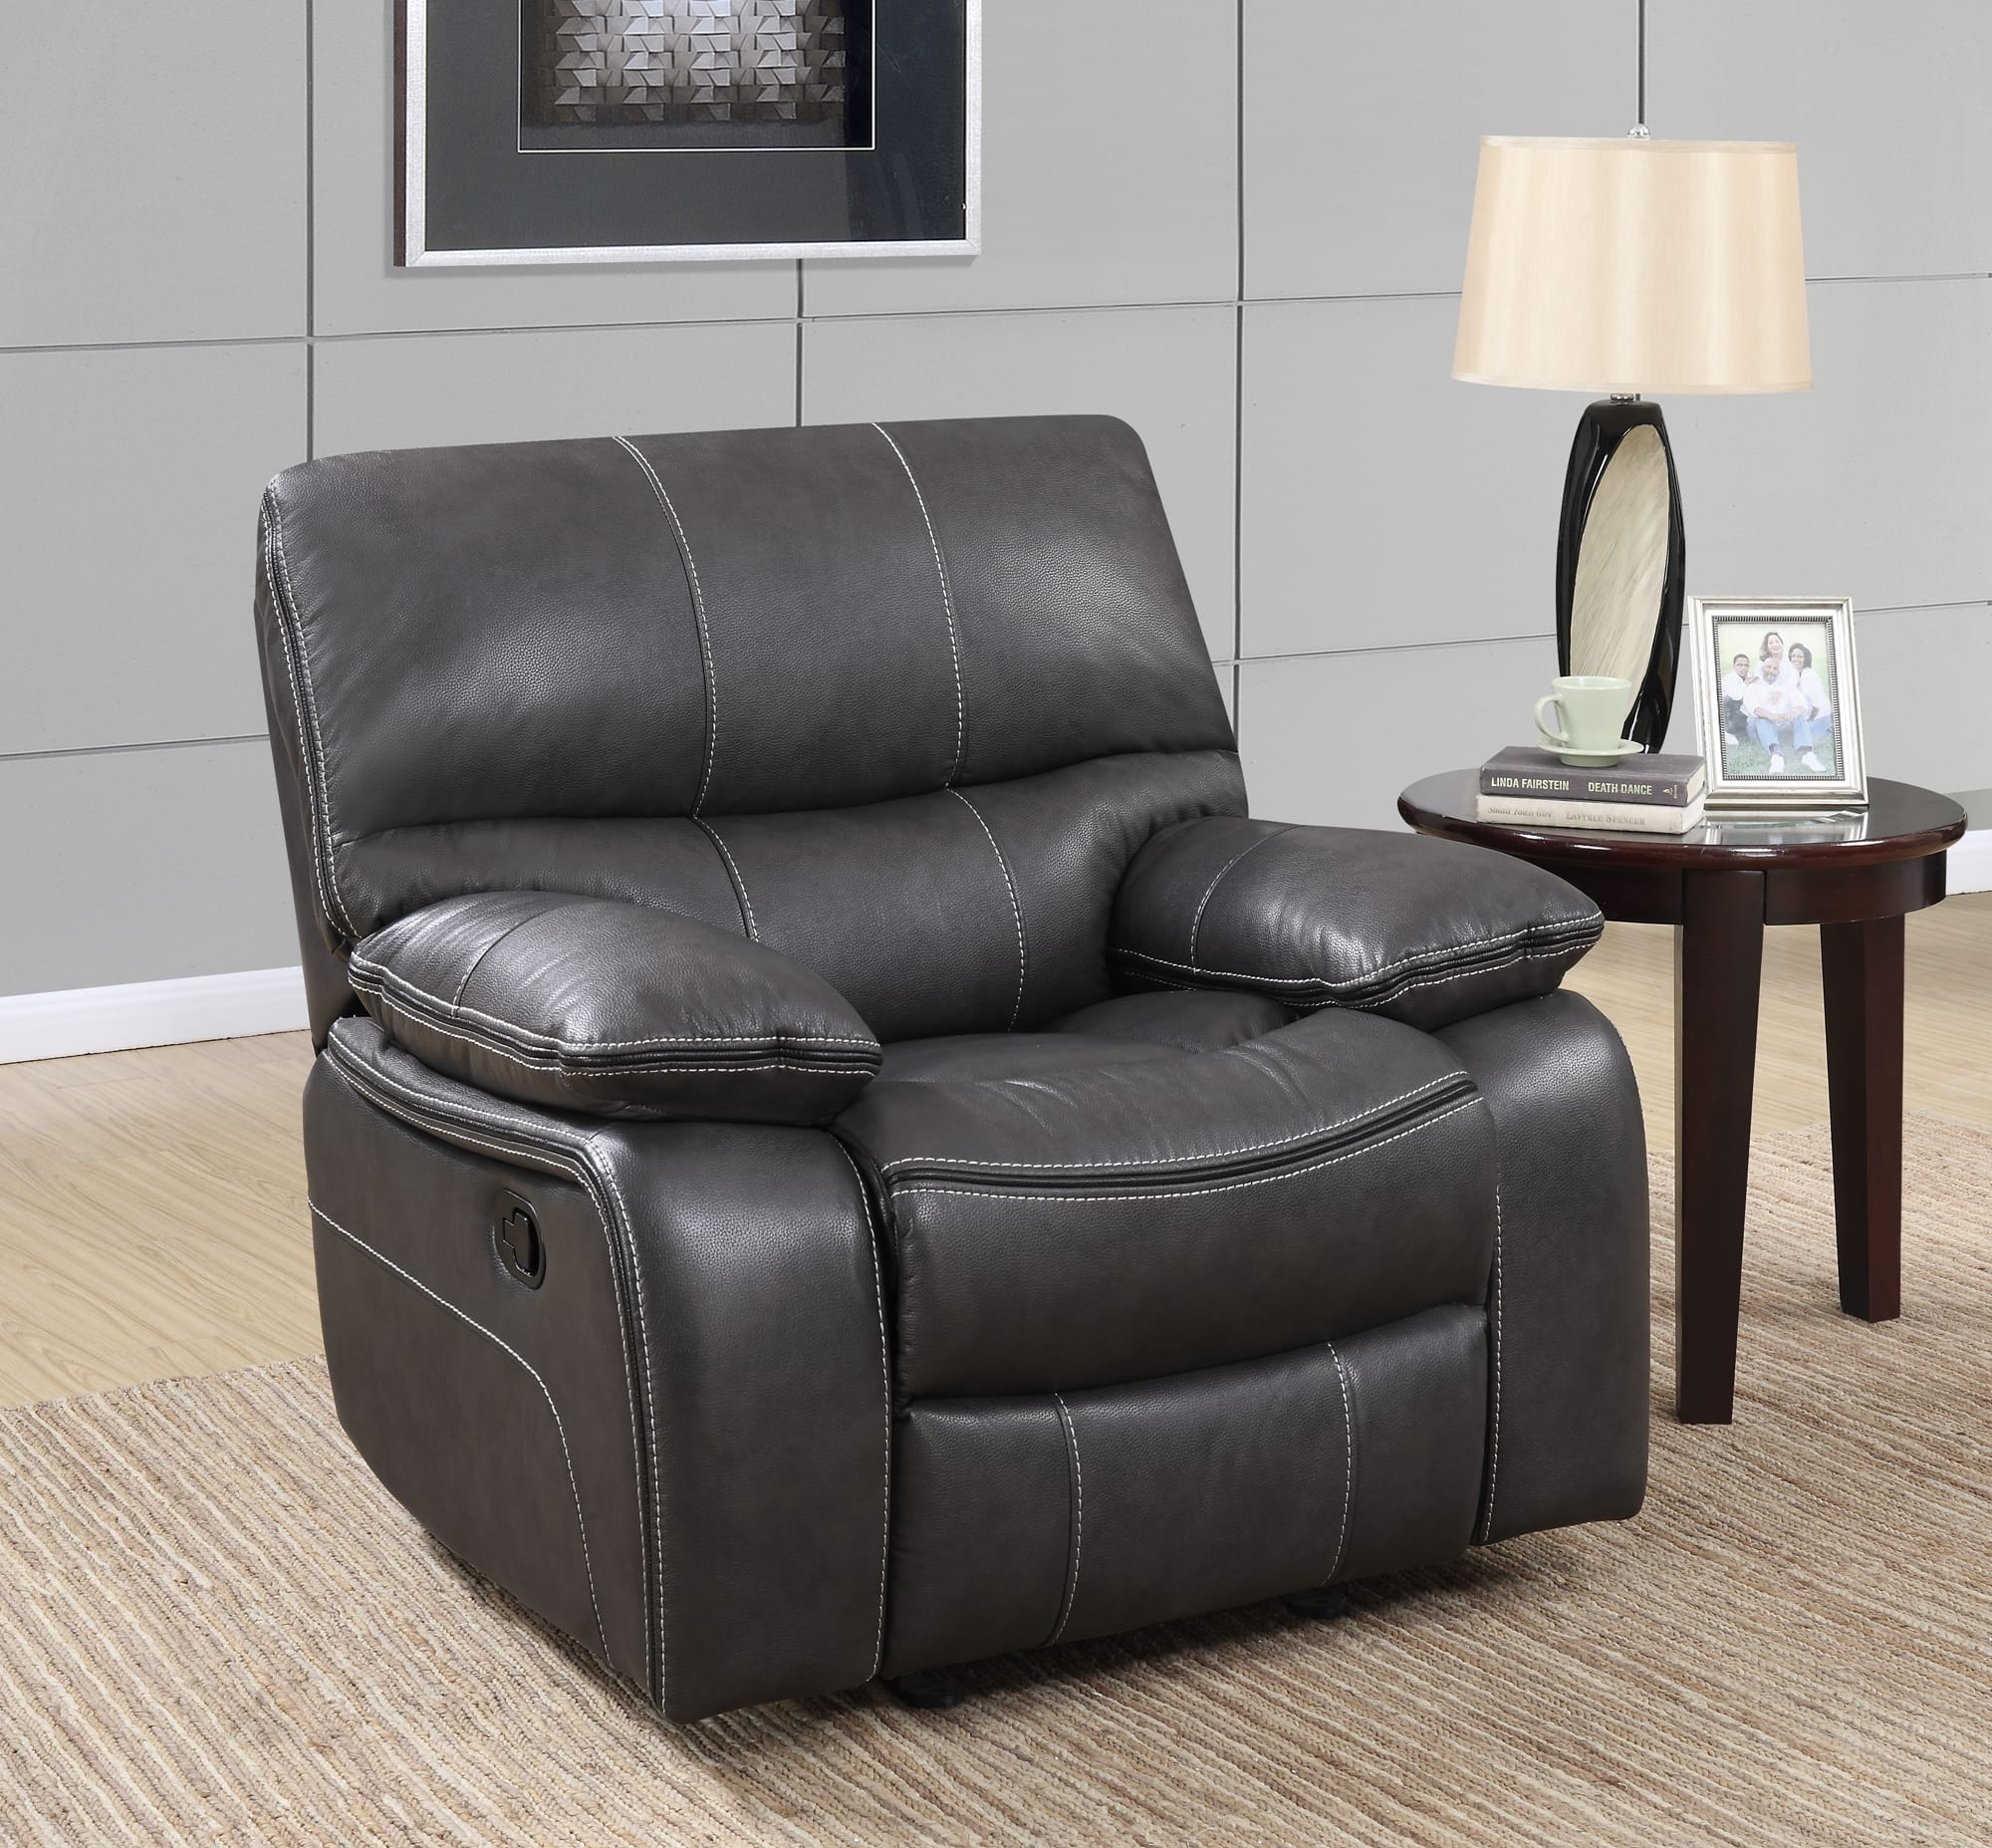 gray leather sofa recliner chairs designs u0040 grey black glider reclining chair by global